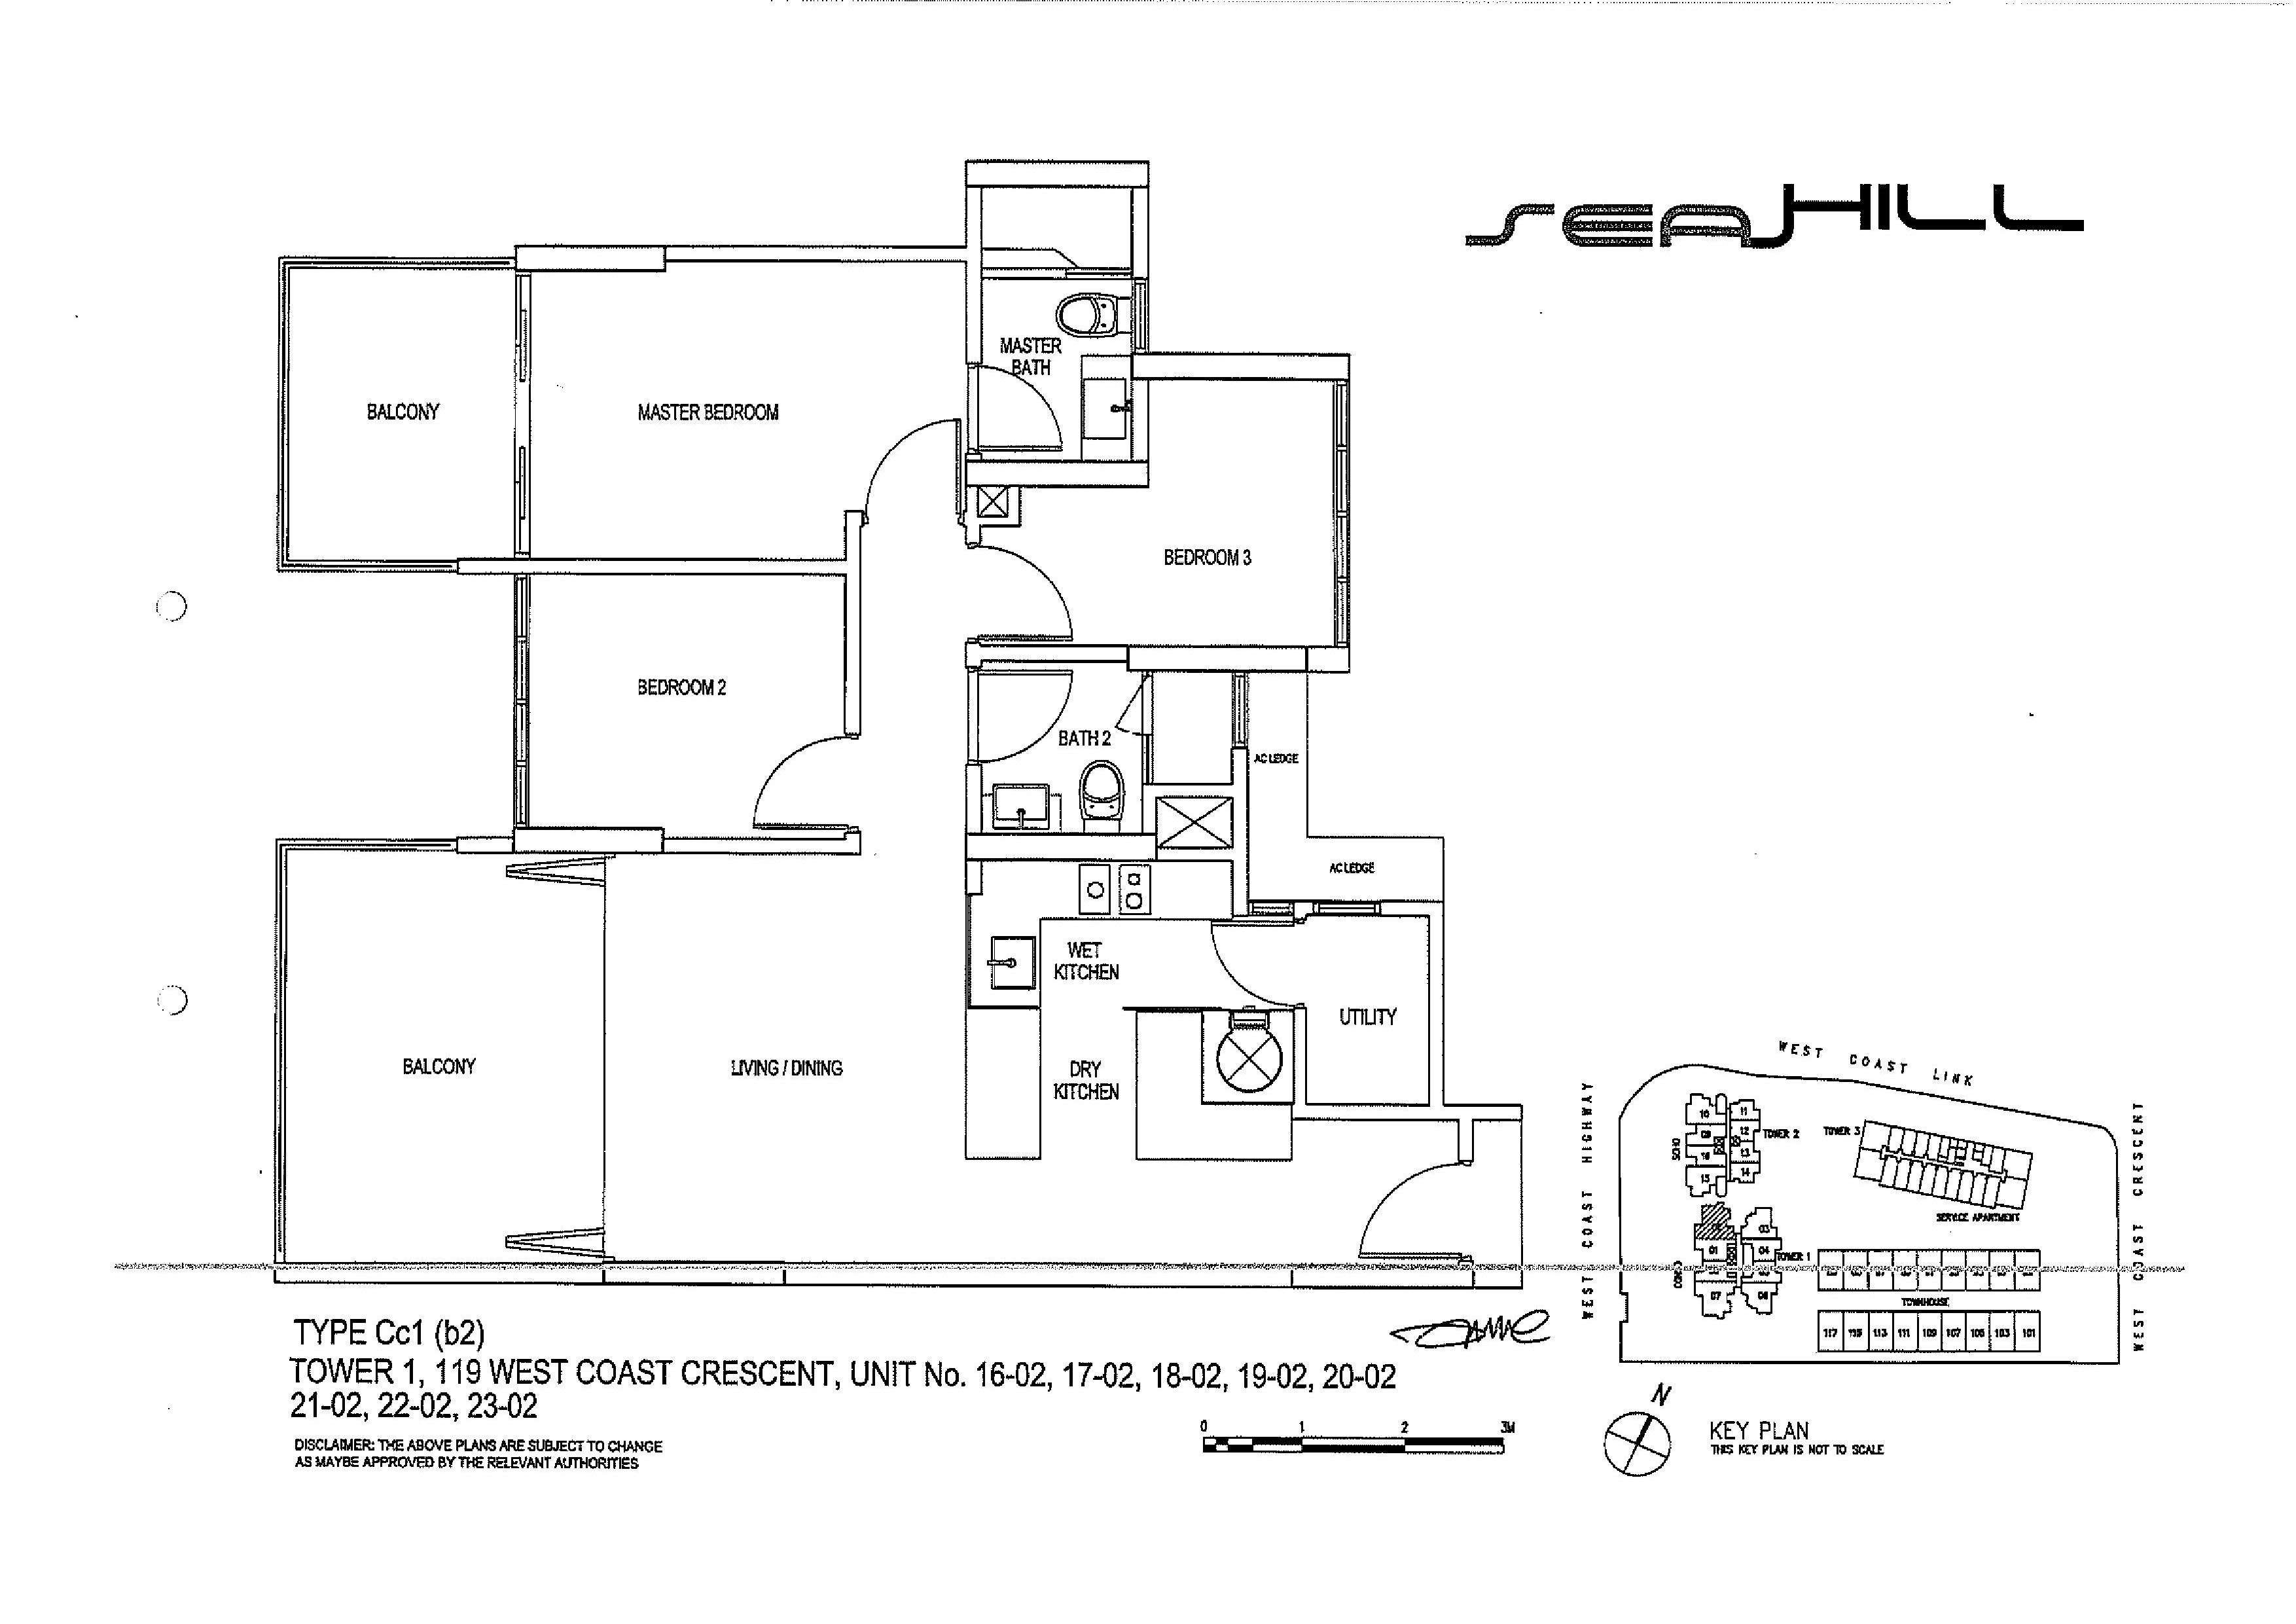 Seahill 3 Bedroom Condo Type CC1(b2) Unit 16-02 to 23-02 Floor Plans